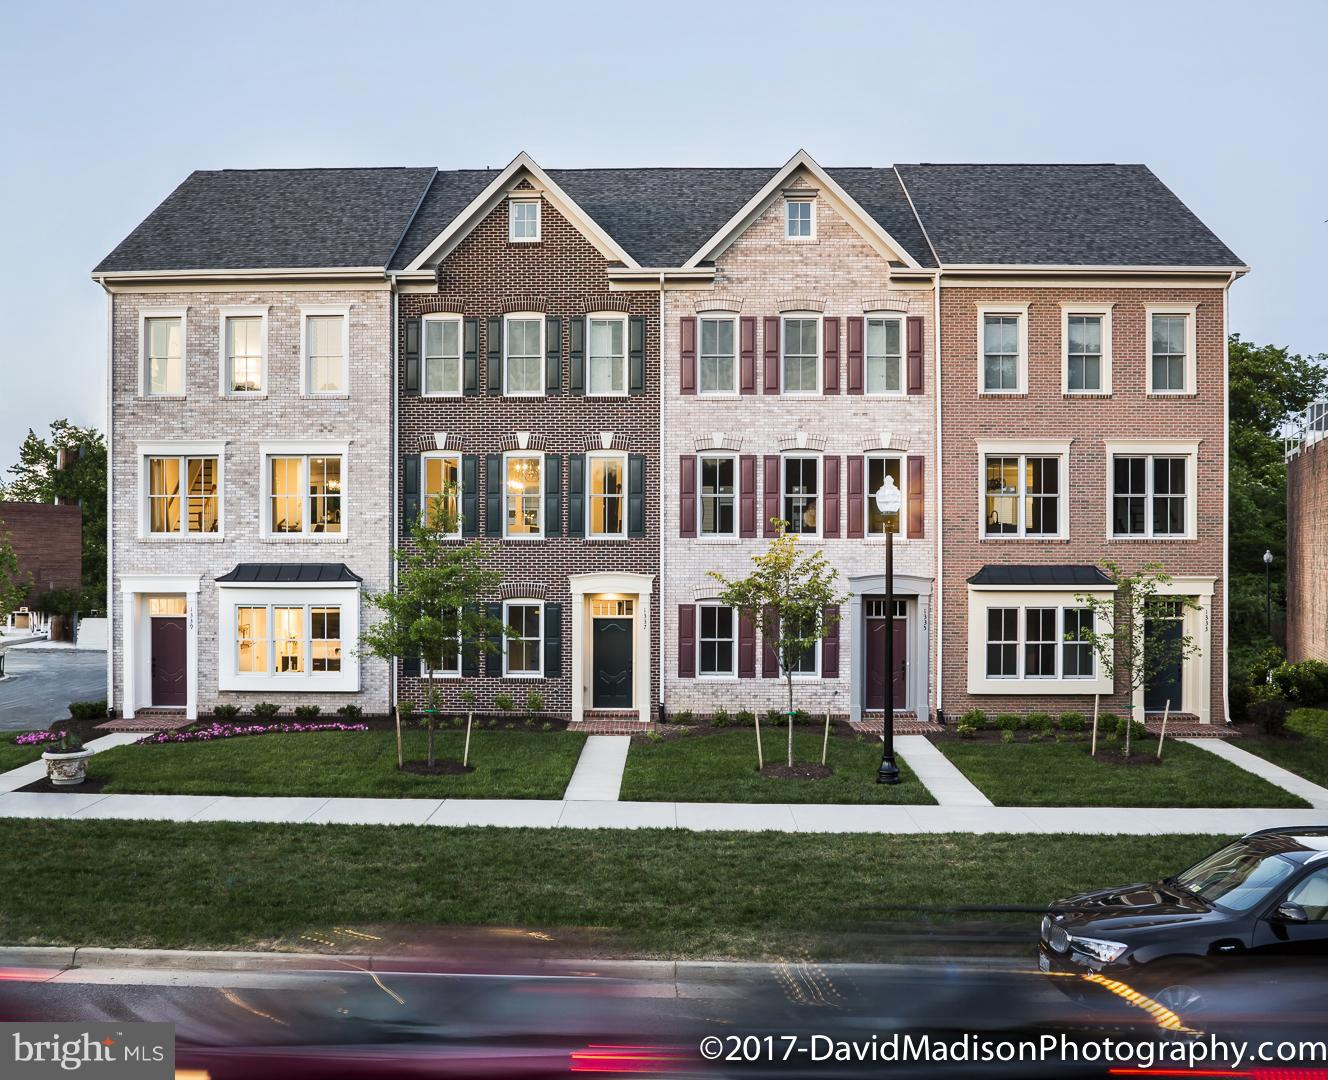 New Construction - Last End Unit, Four Story Luxury Condominium Townhome in Old Town Alexandria. 3 Bedrooms, 3.5 Baths + 2nd Powder Room on Loft/Roof Top Terrace level. Beautiful Kitchen with Alpine white cabinets; large center island and generous cabinet storage. Hardwood Flooring throughout Main Level. 9 ft ceilings on all levels, Large 200+ sq ft Terrace! 2 Car Garage!! Fenced Front Yards!!!